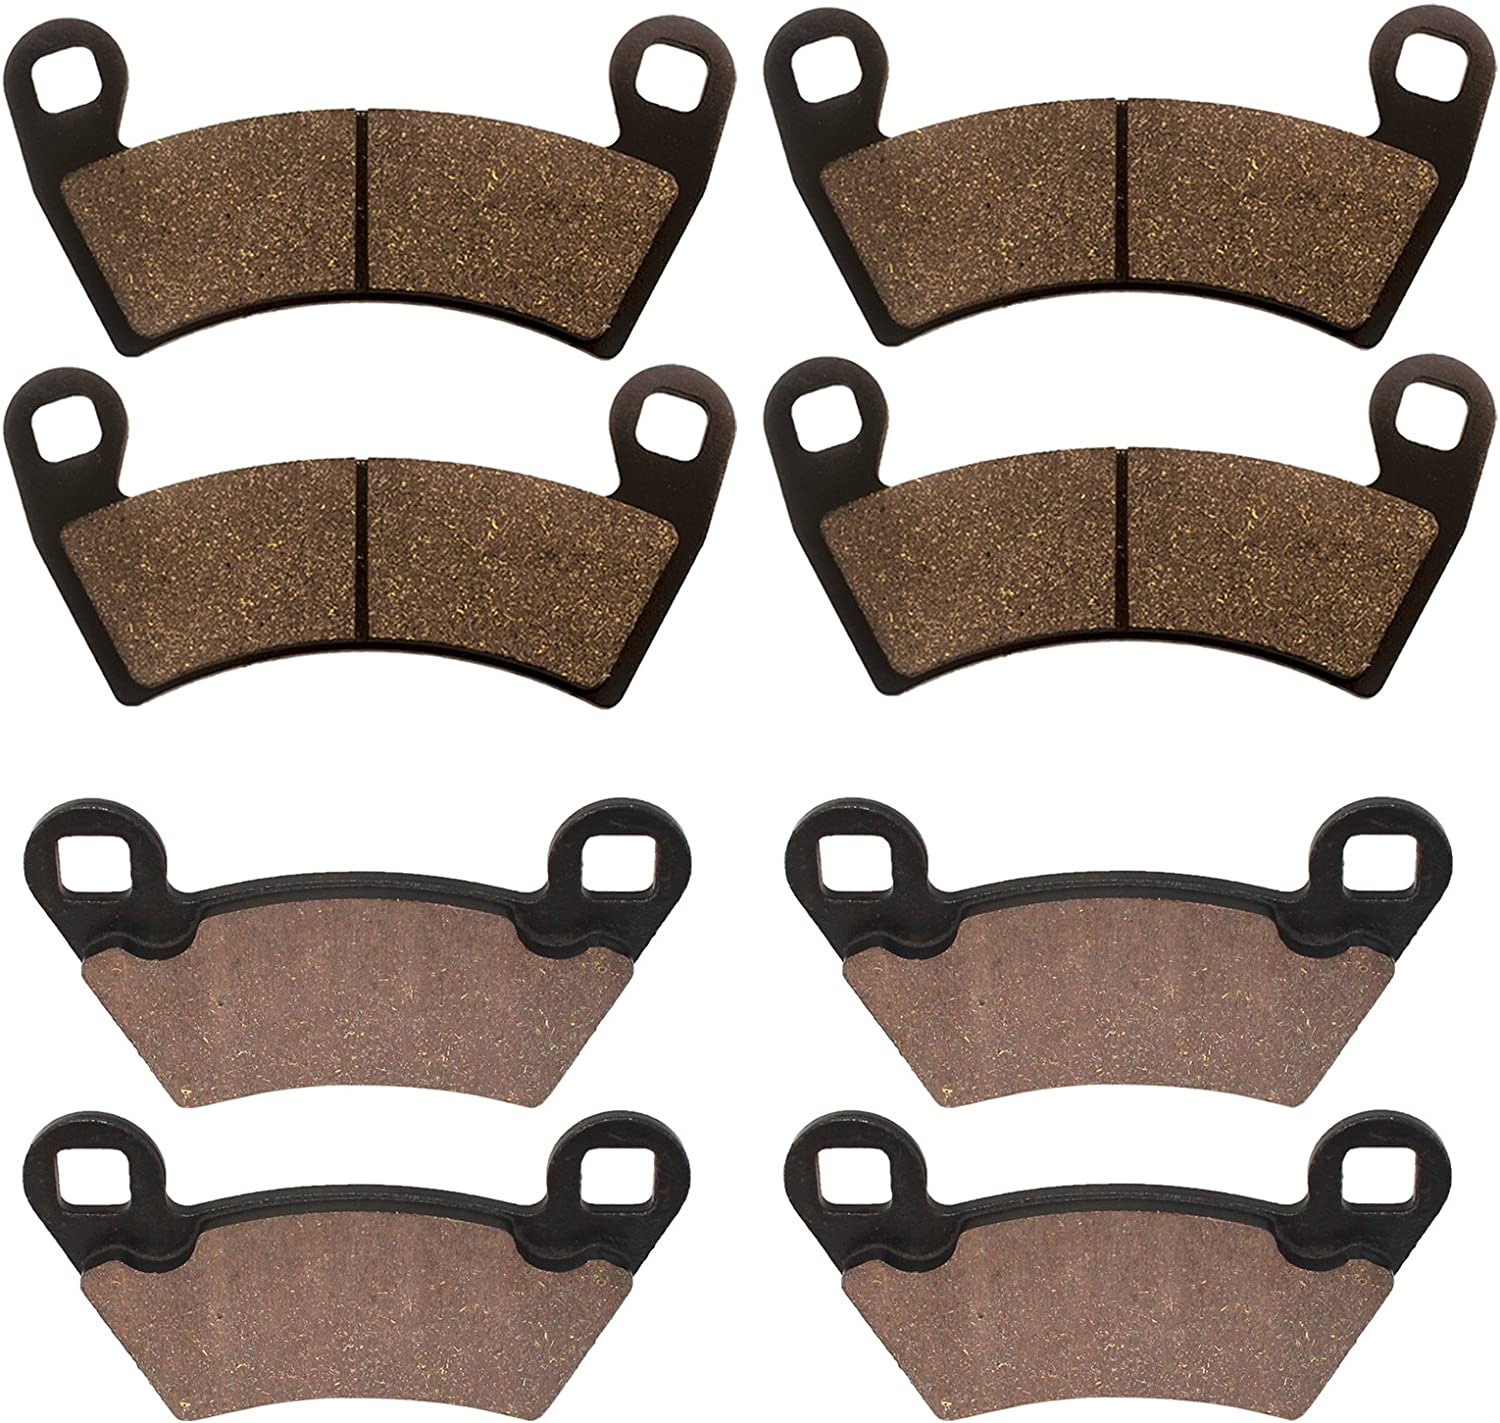 Rear Brake Pads For Polaris Ranger RZR XP 800 EPS LE 2010 2011 2012 2013